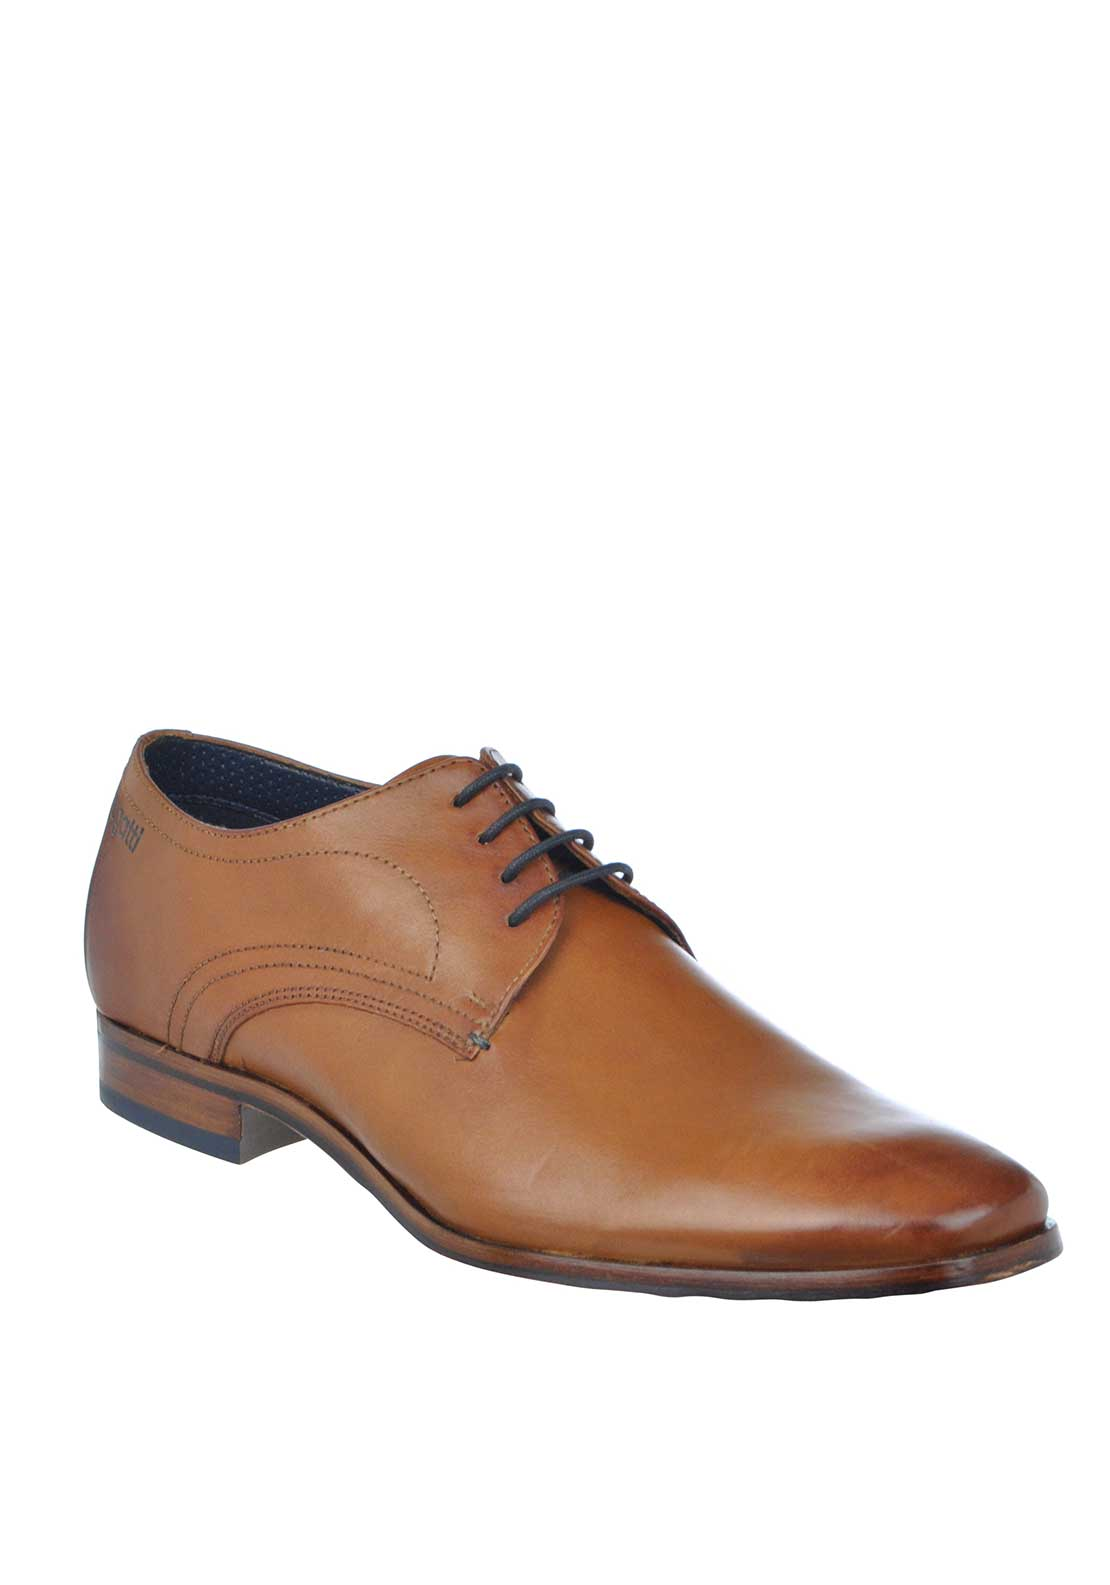 Bugatti Lace Up Leather Formal Shoe, Tan